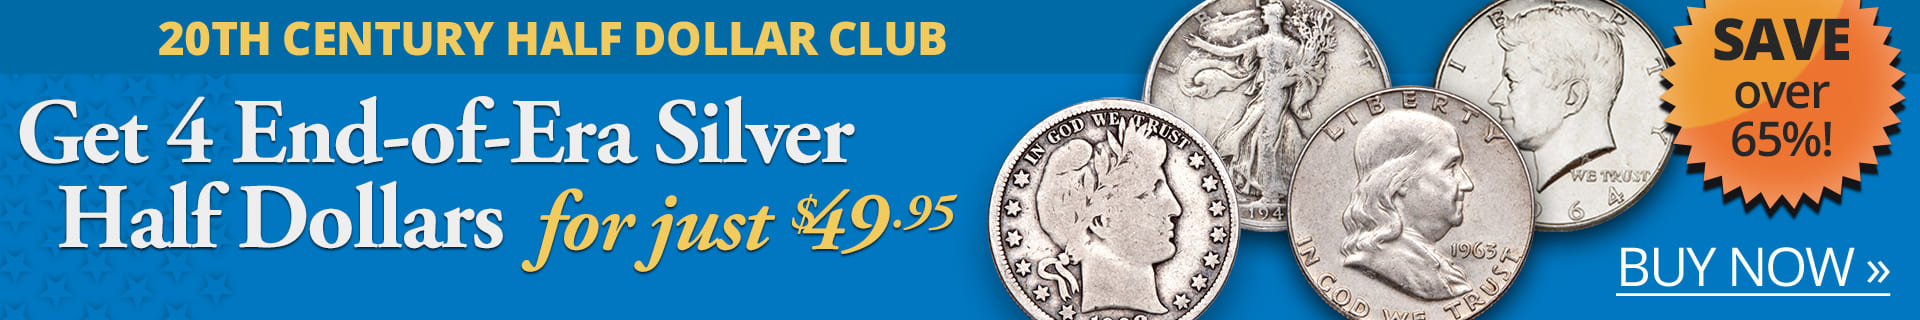 Get 3 End-of-Era Silver Half Dollars for just $19.95